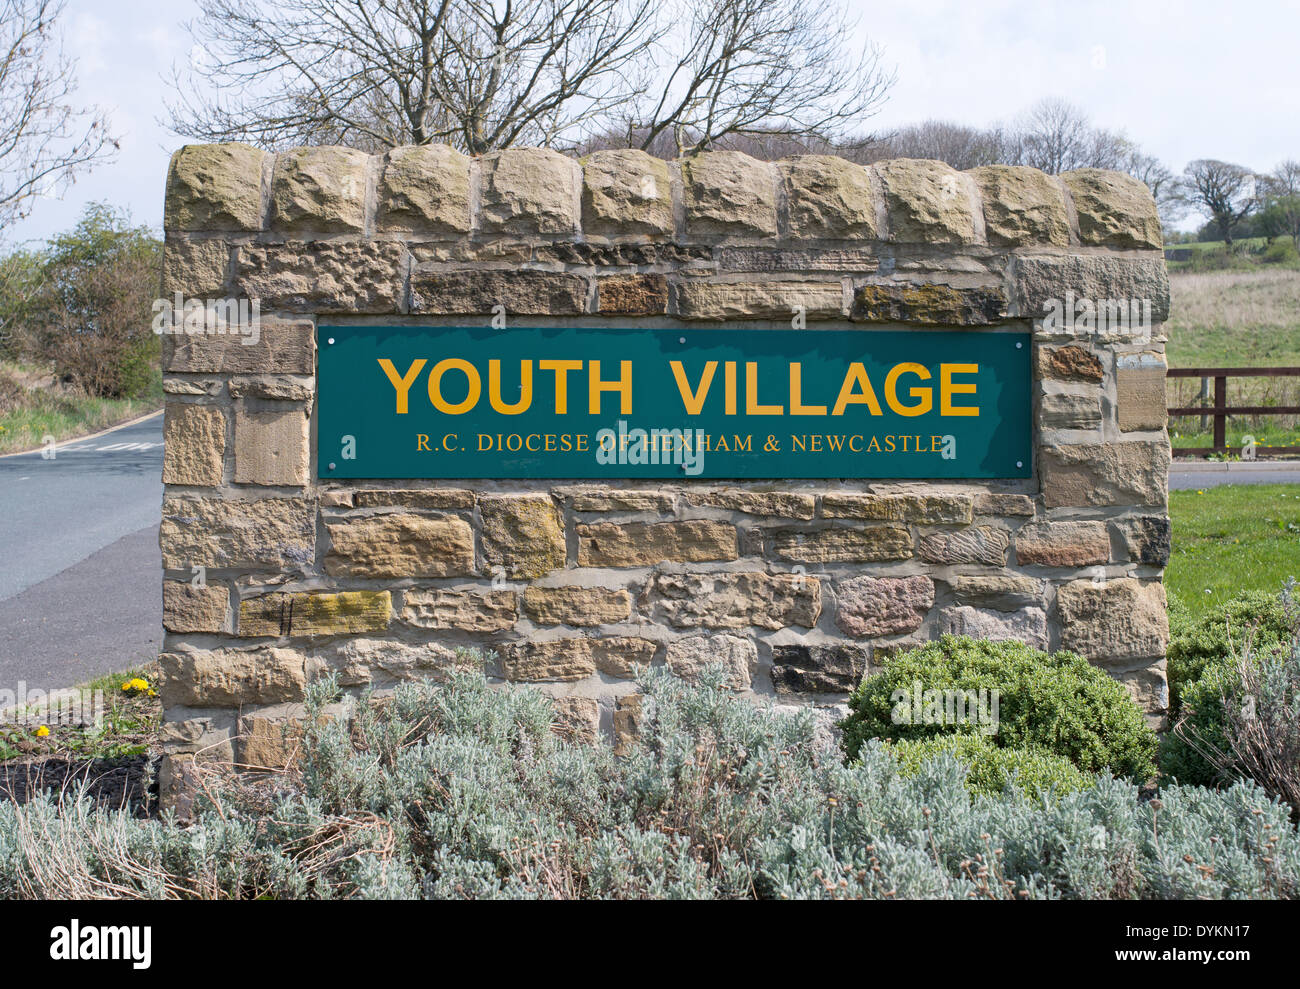 Youth Village R.C. Diocese of Hexham and Newcastle sign Allensford, north east England UK - Stock Image